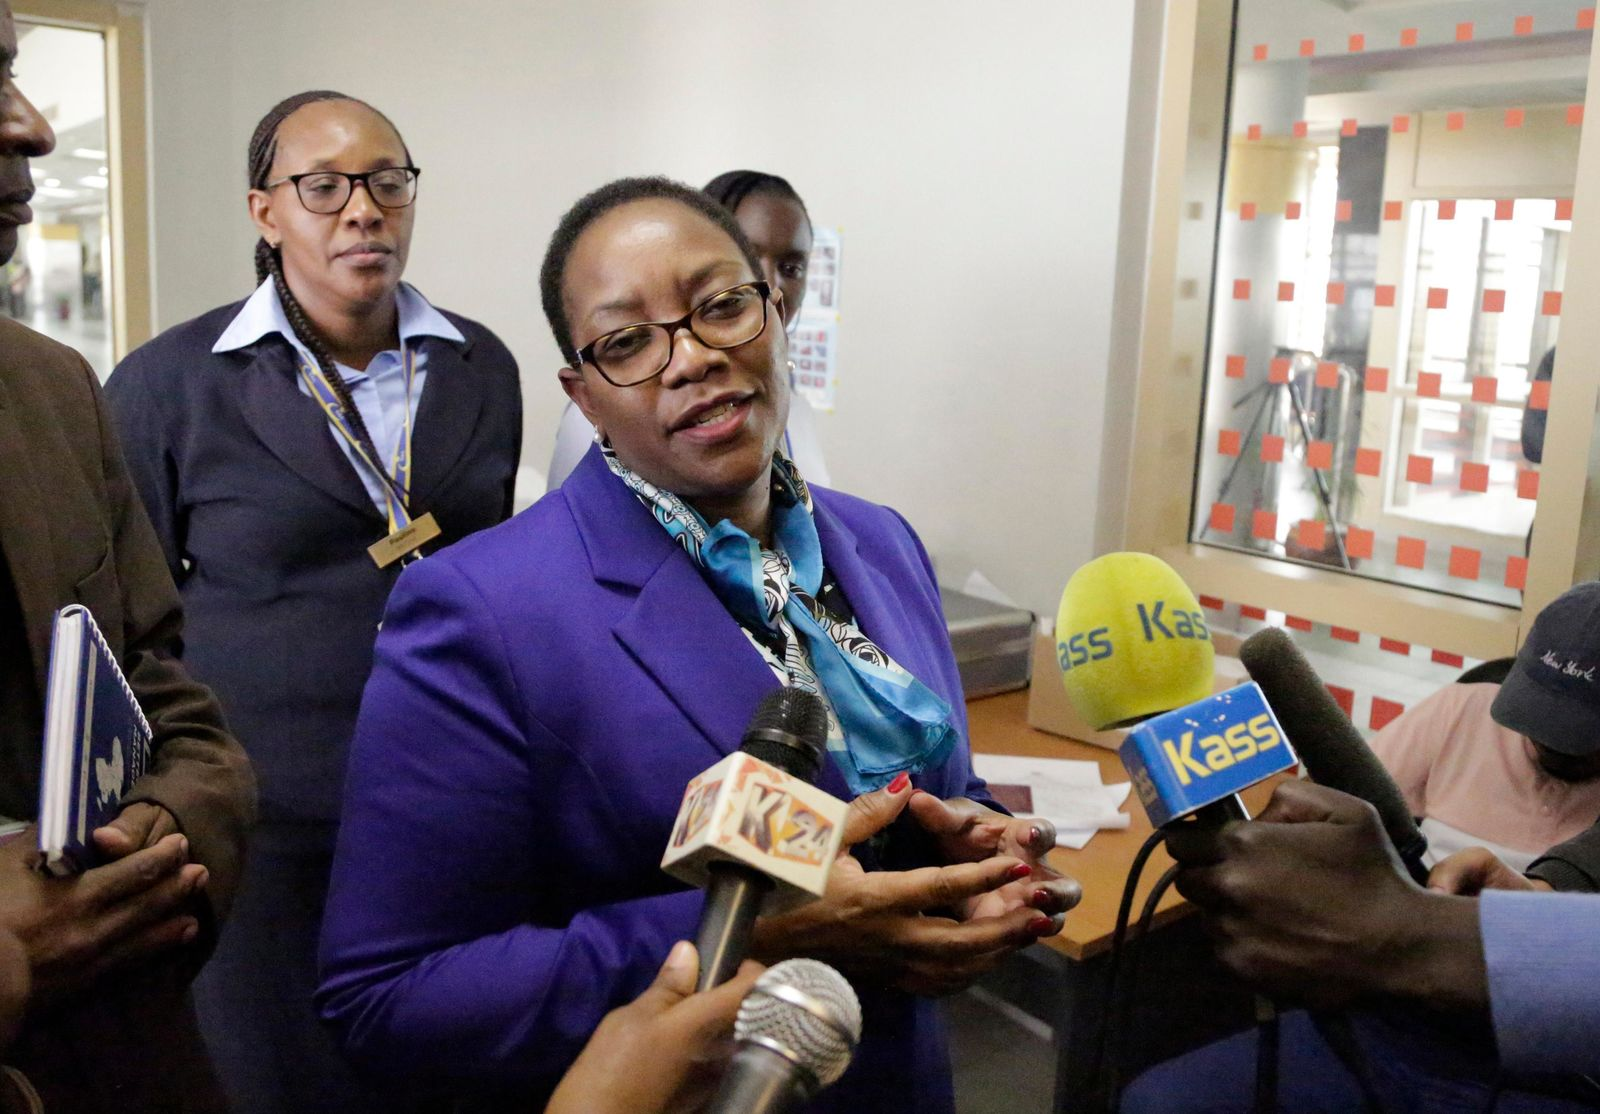 Kenya's health minister Sicily Kariuki speaks to the media about measures the government is taking to prevent Ebola, at the Jomo Kenyatta International Airport in Nairobi, Kenya Monday, June 17, 2019. Kenyan doctors are testing a hospital patient in western Kenya who has Ebola-like symptoms, as eastern Congo is struggling to control the outbreak and Uganda has reported two deaths from the deadly hemorrhagic fever, though Kenya's health minister downplayed the threat Monday. (AP Photo/Khalil Senosi)